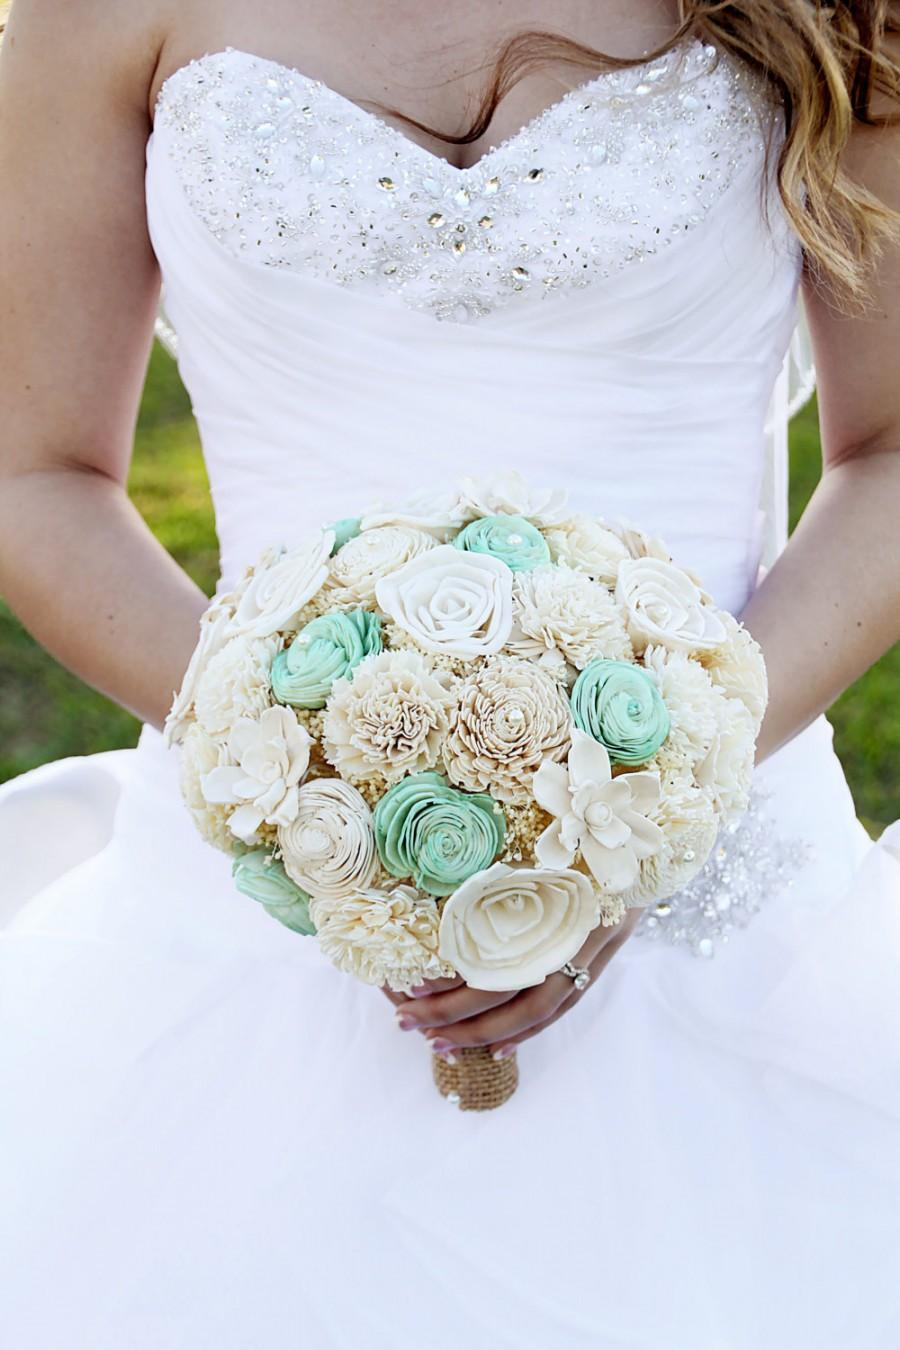 زفاف - Handmade Wedding Bouquet, Sola wood Bouquet, Burlap Mint Bouquet, Alternative Bouquet, Mint Bouquet, Sola flowers, Wood Bouquet